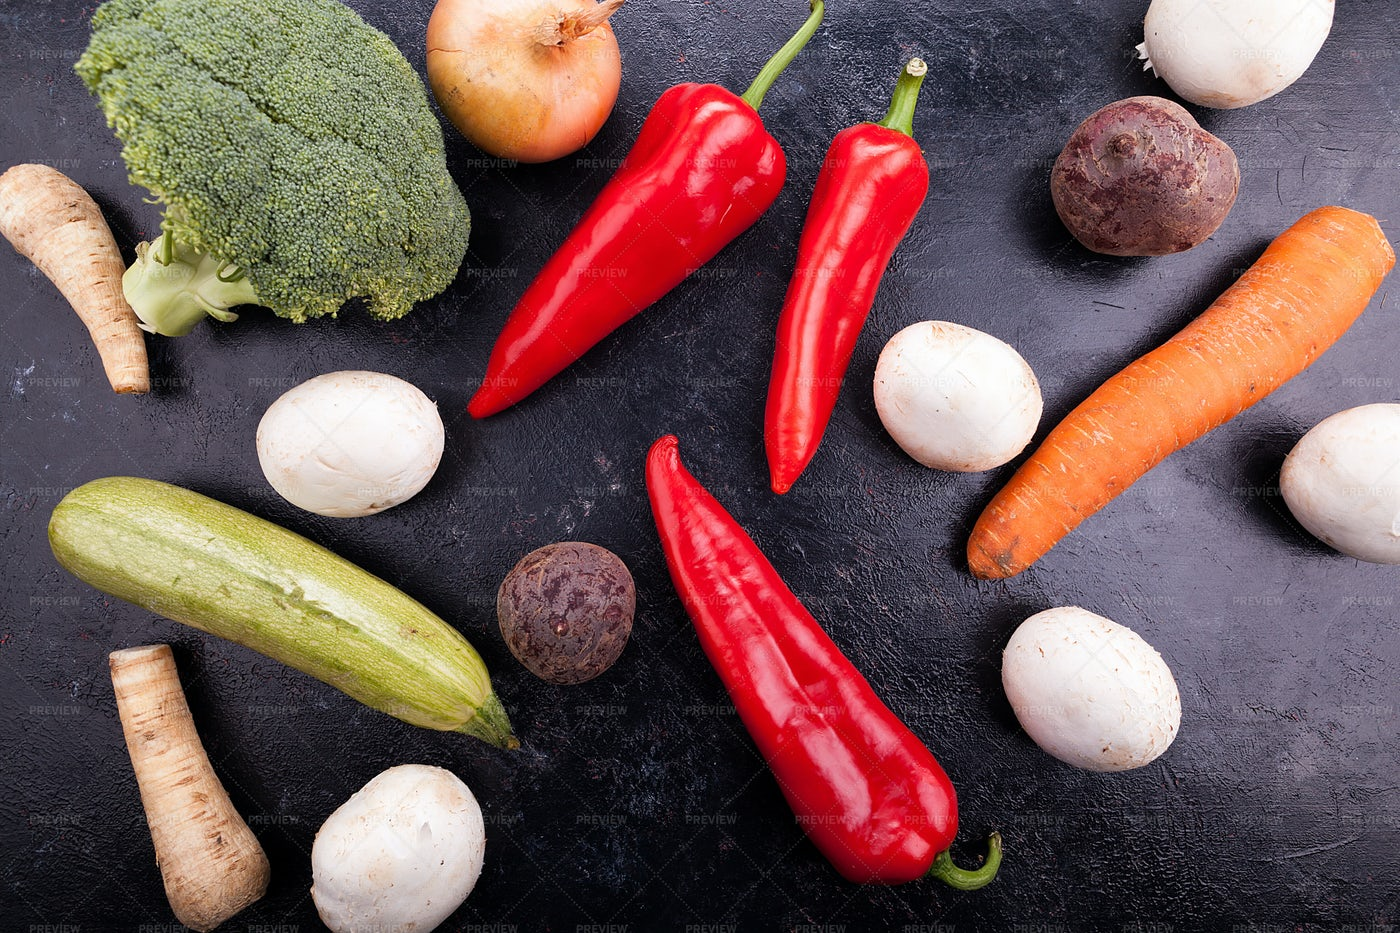 Top View Of Vegetables On A Board: Stock Photos